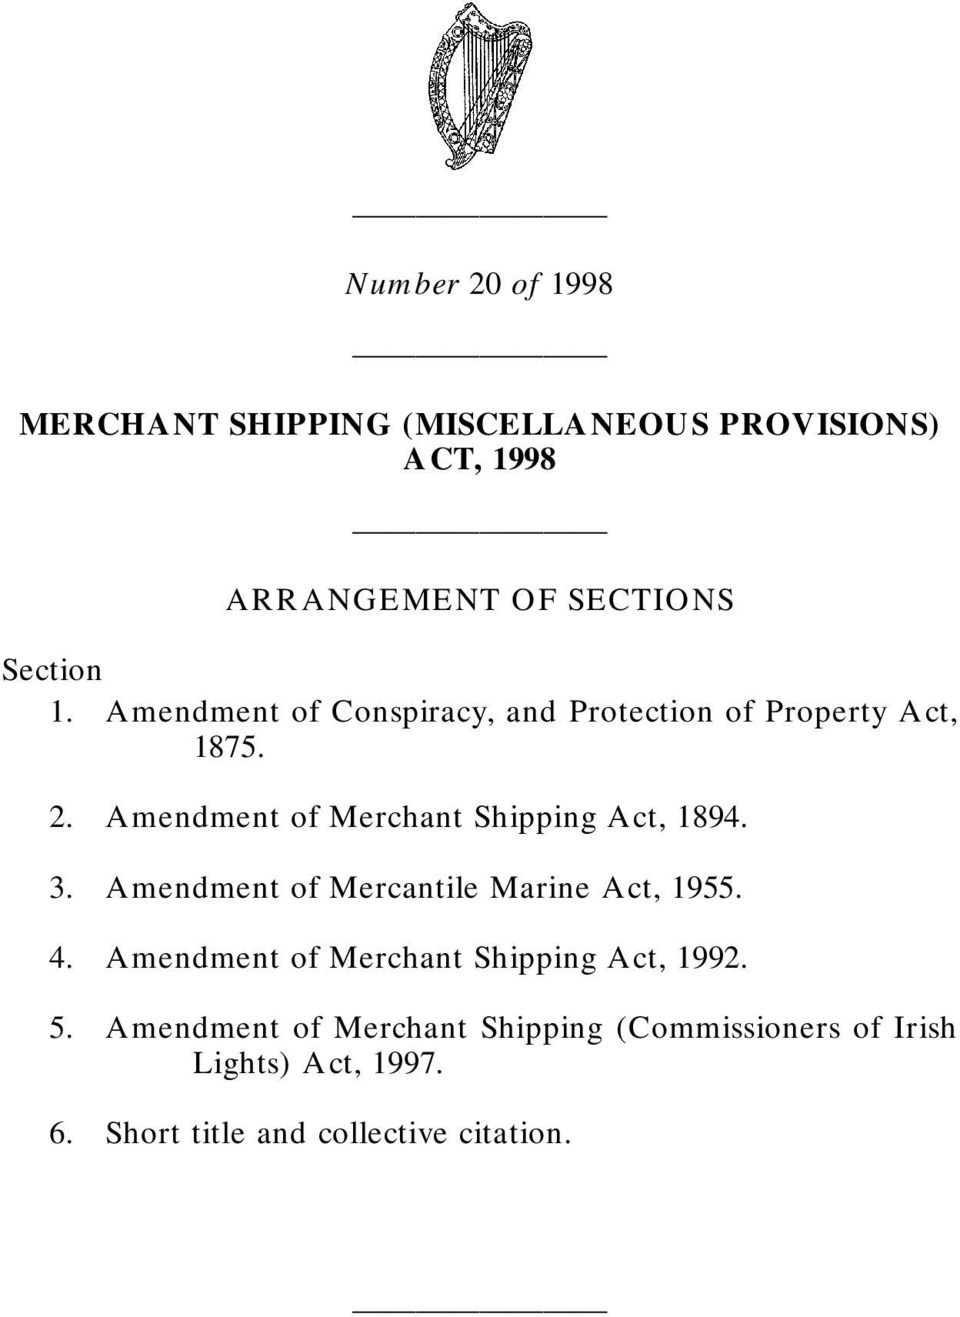 Merchant Shipping Act, 1894. 3. Mercantile Marine Act, 1955. 4.